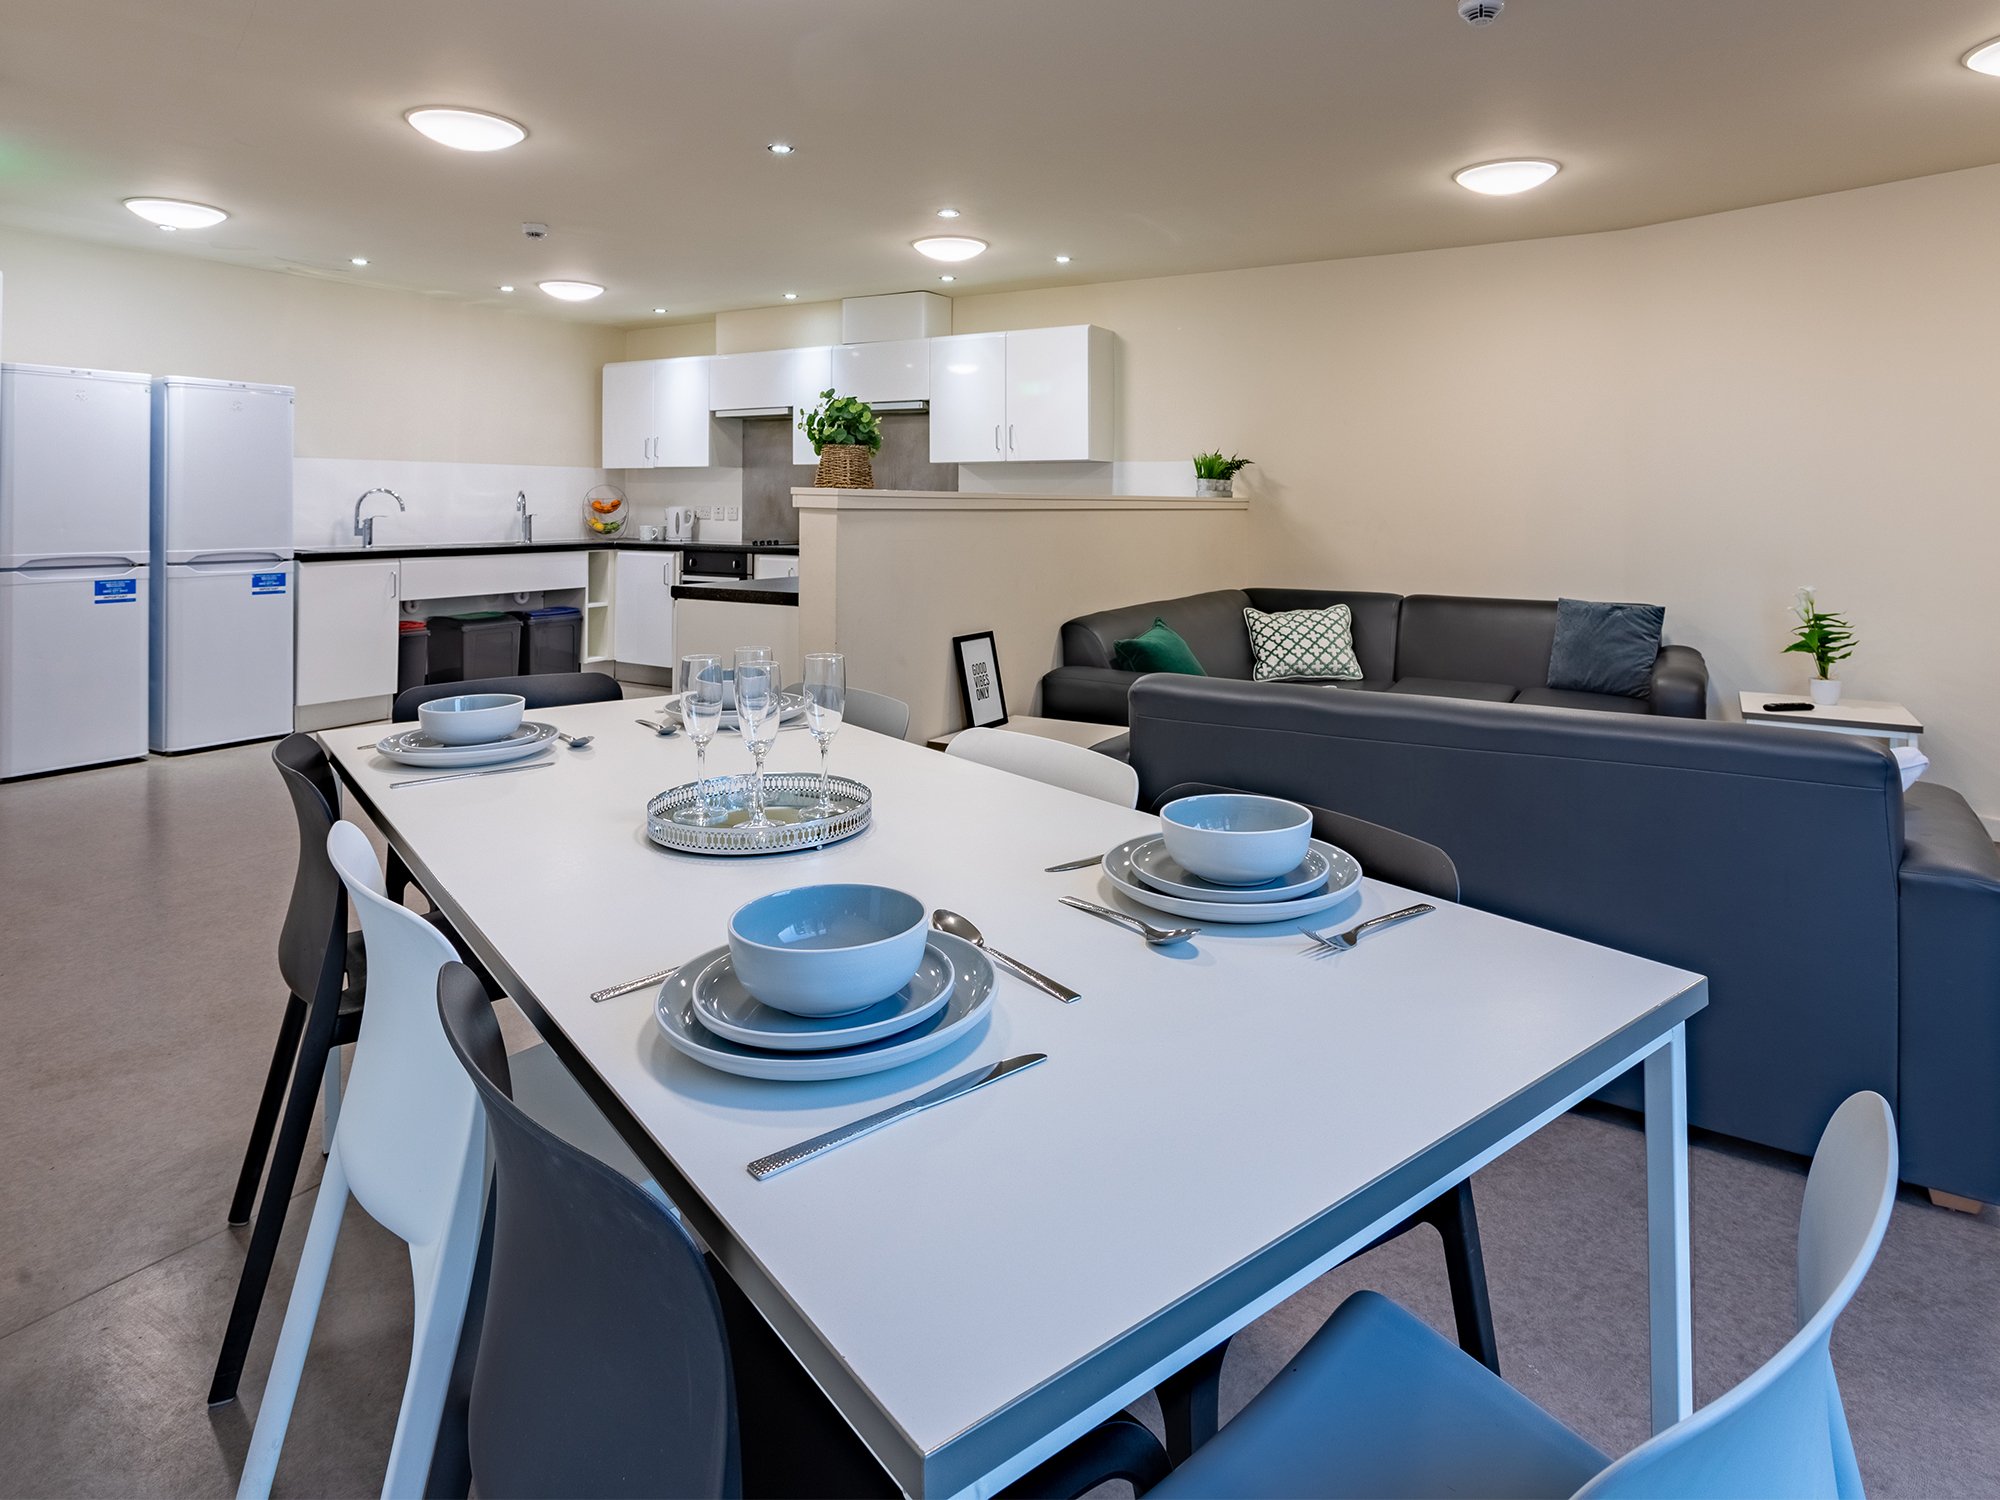 Shared kitchen in Powis Place